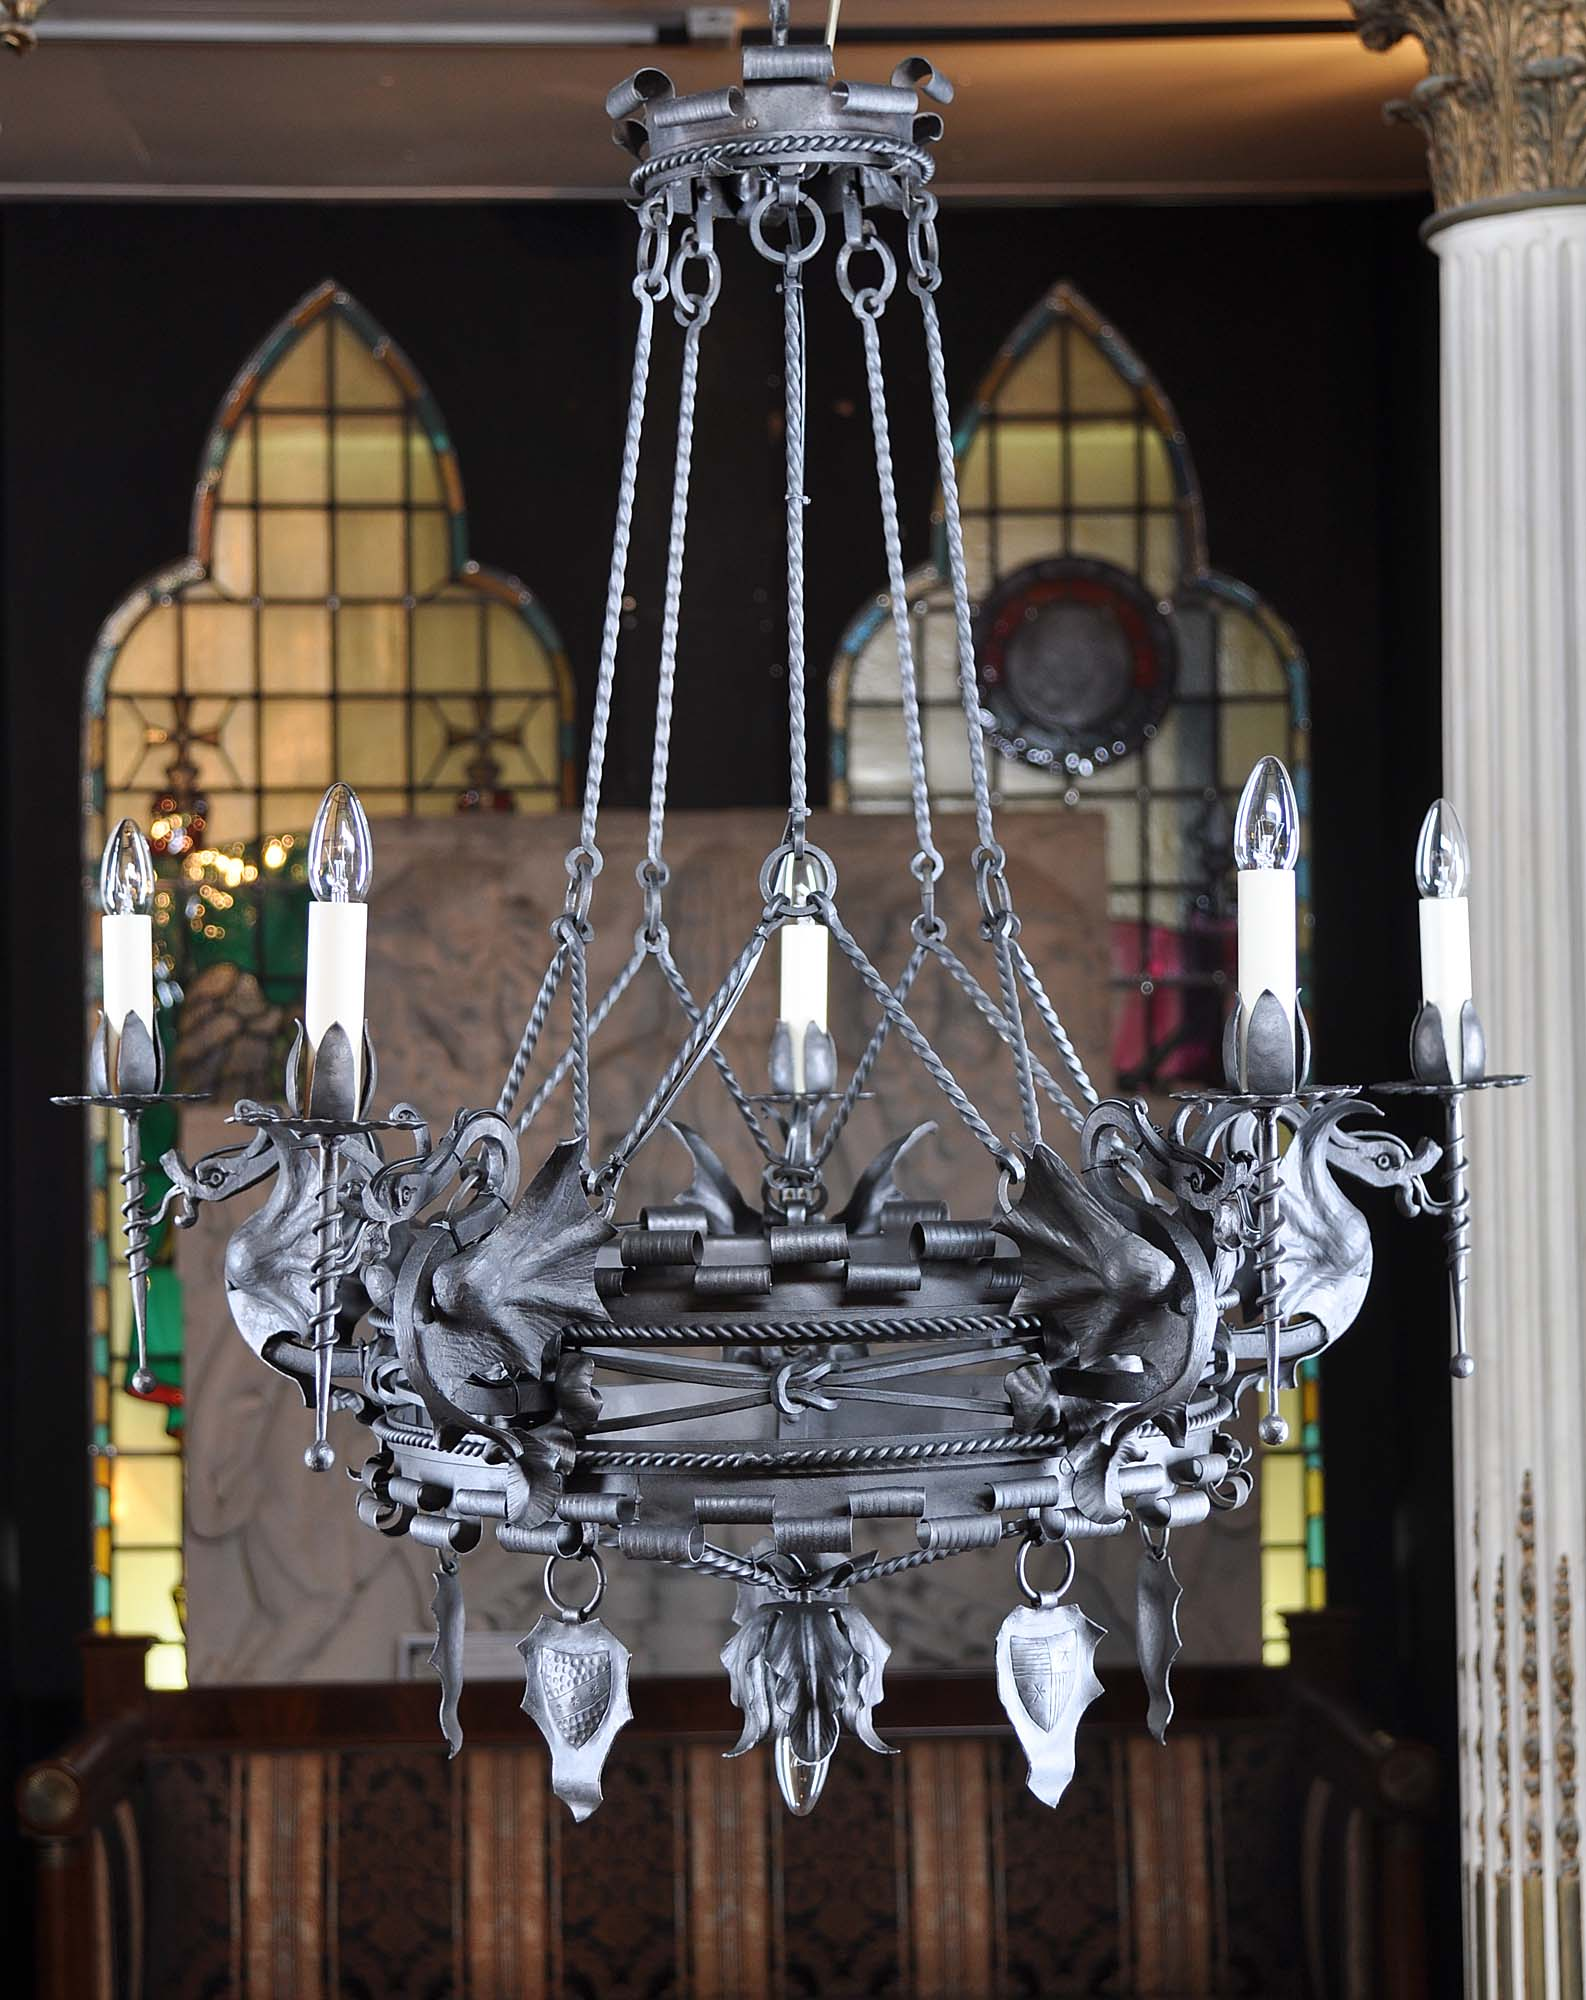 Iron mannerist dragon chandelier